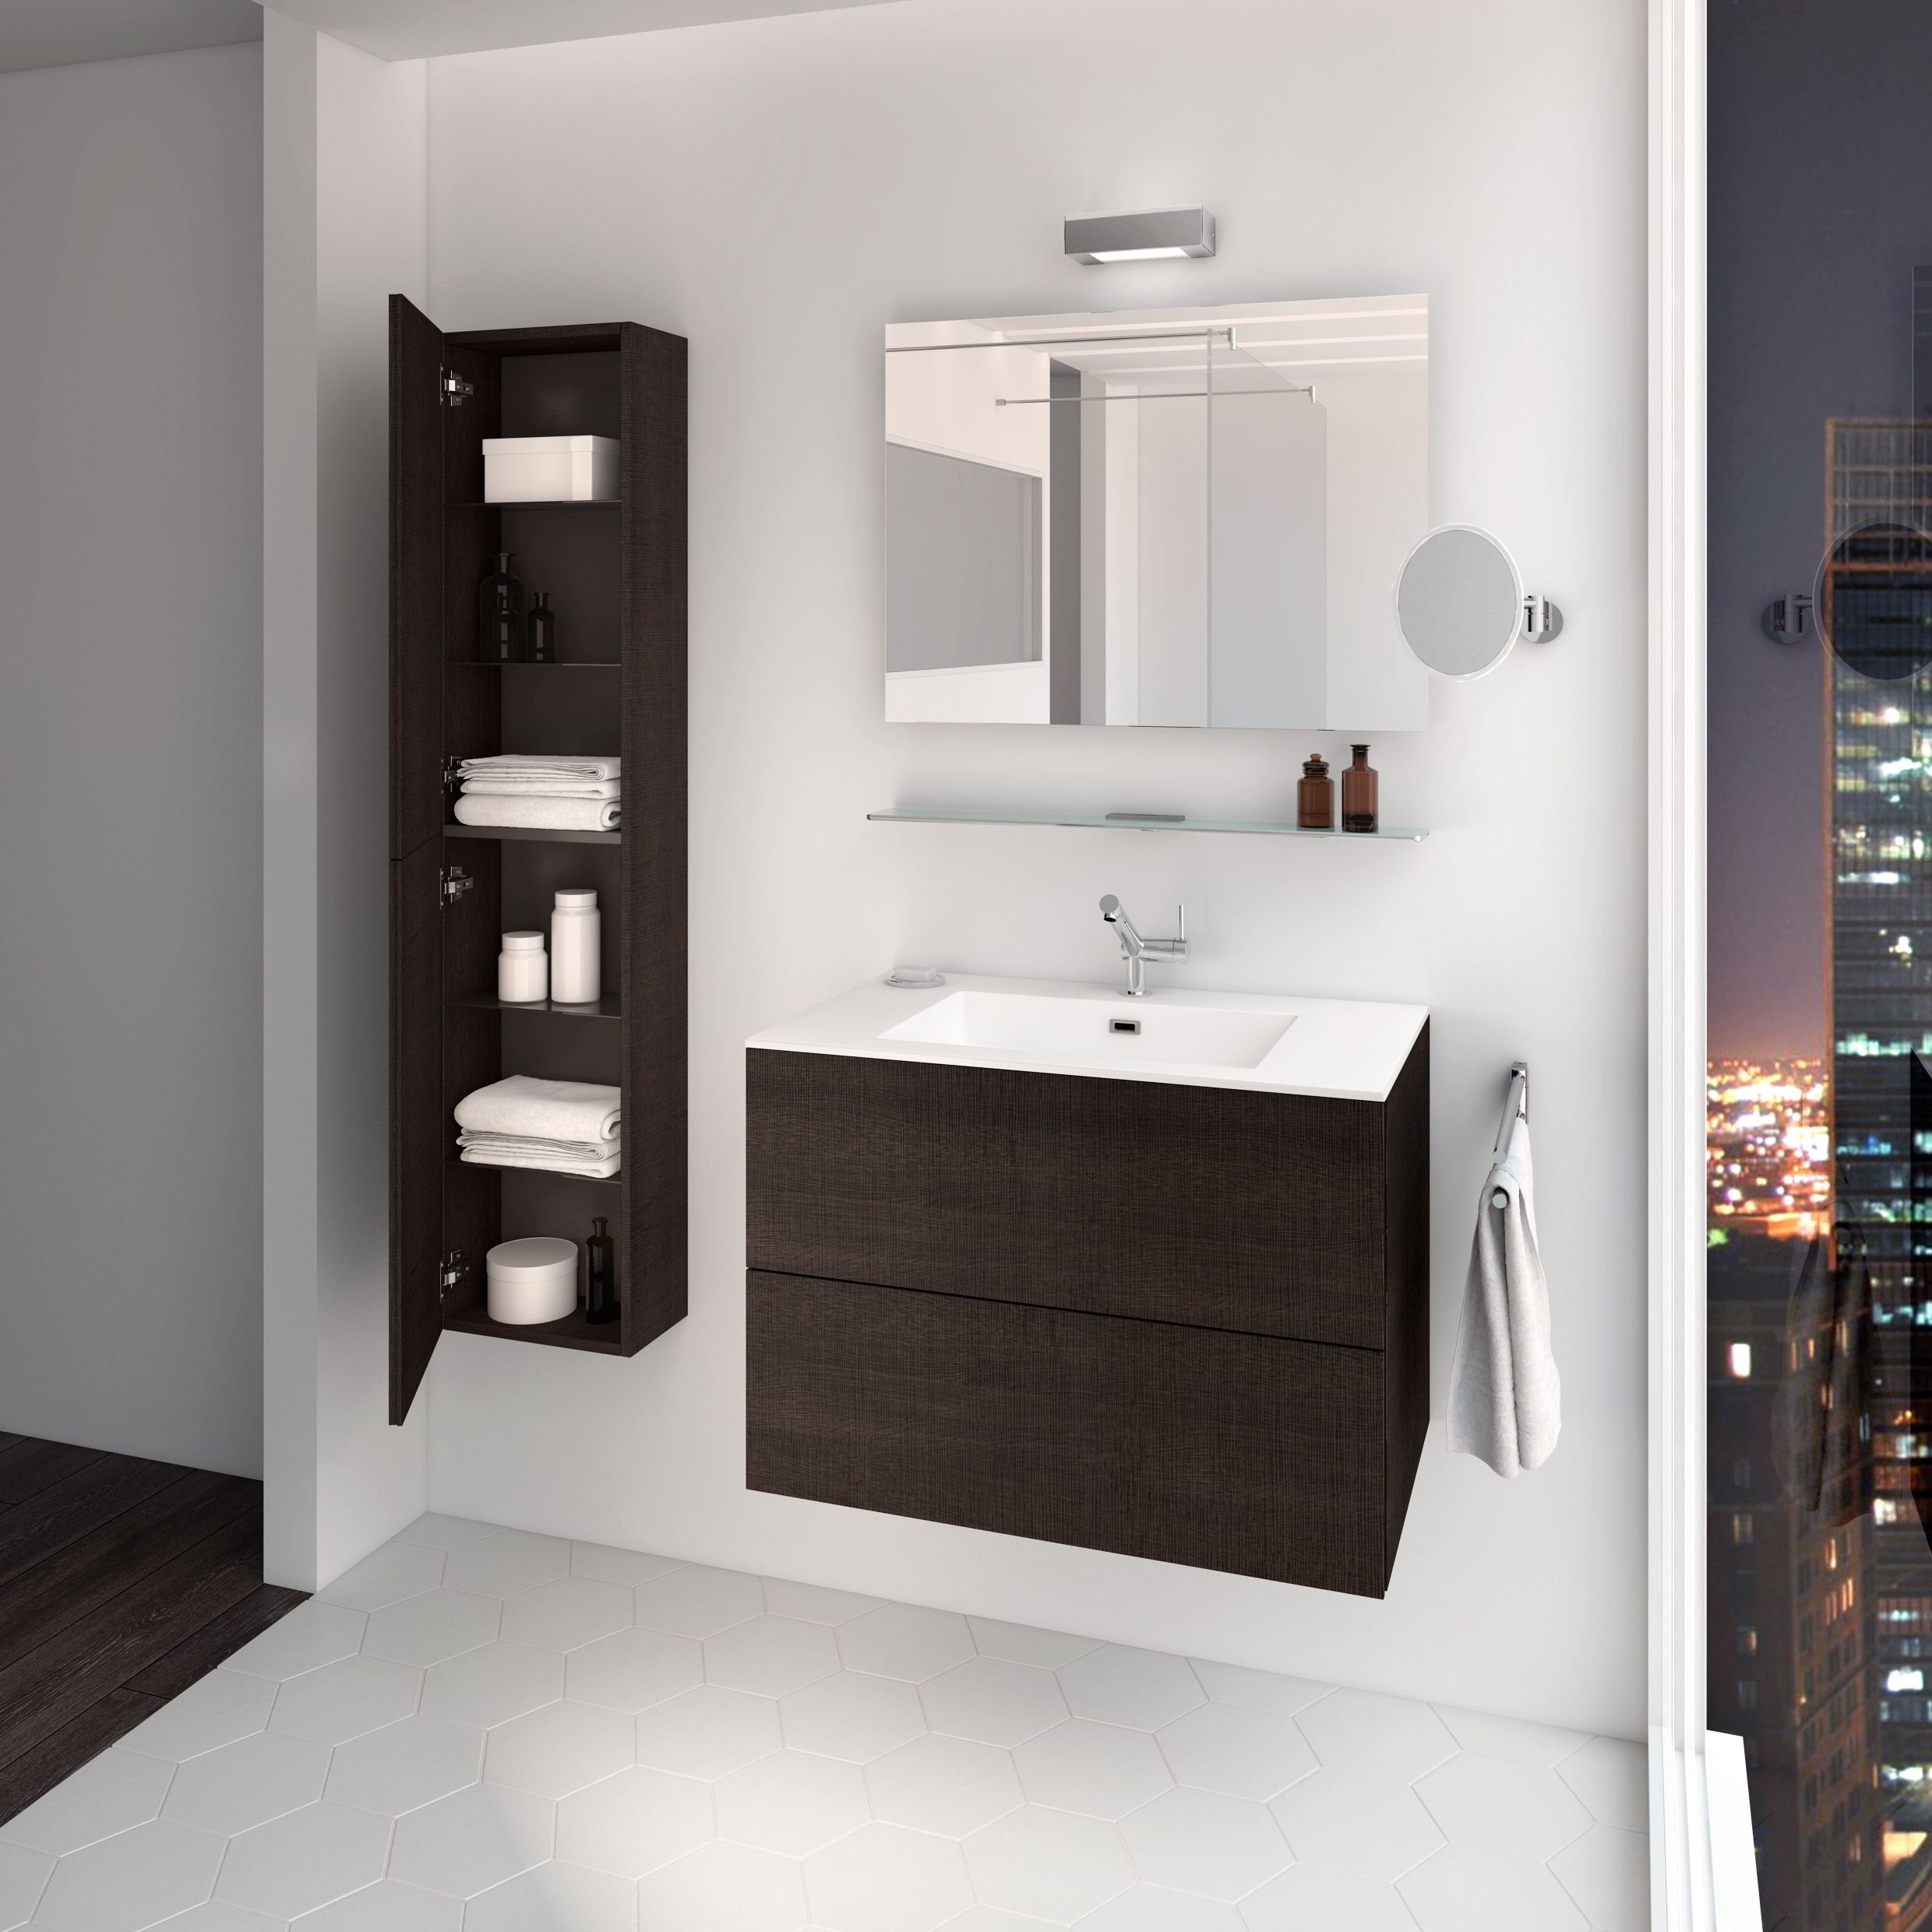 Block Evo #bathroom #furniture collection by Cosmic | FURNITURE ... - Block Evo #bathroom #furniture collection by Cosmic